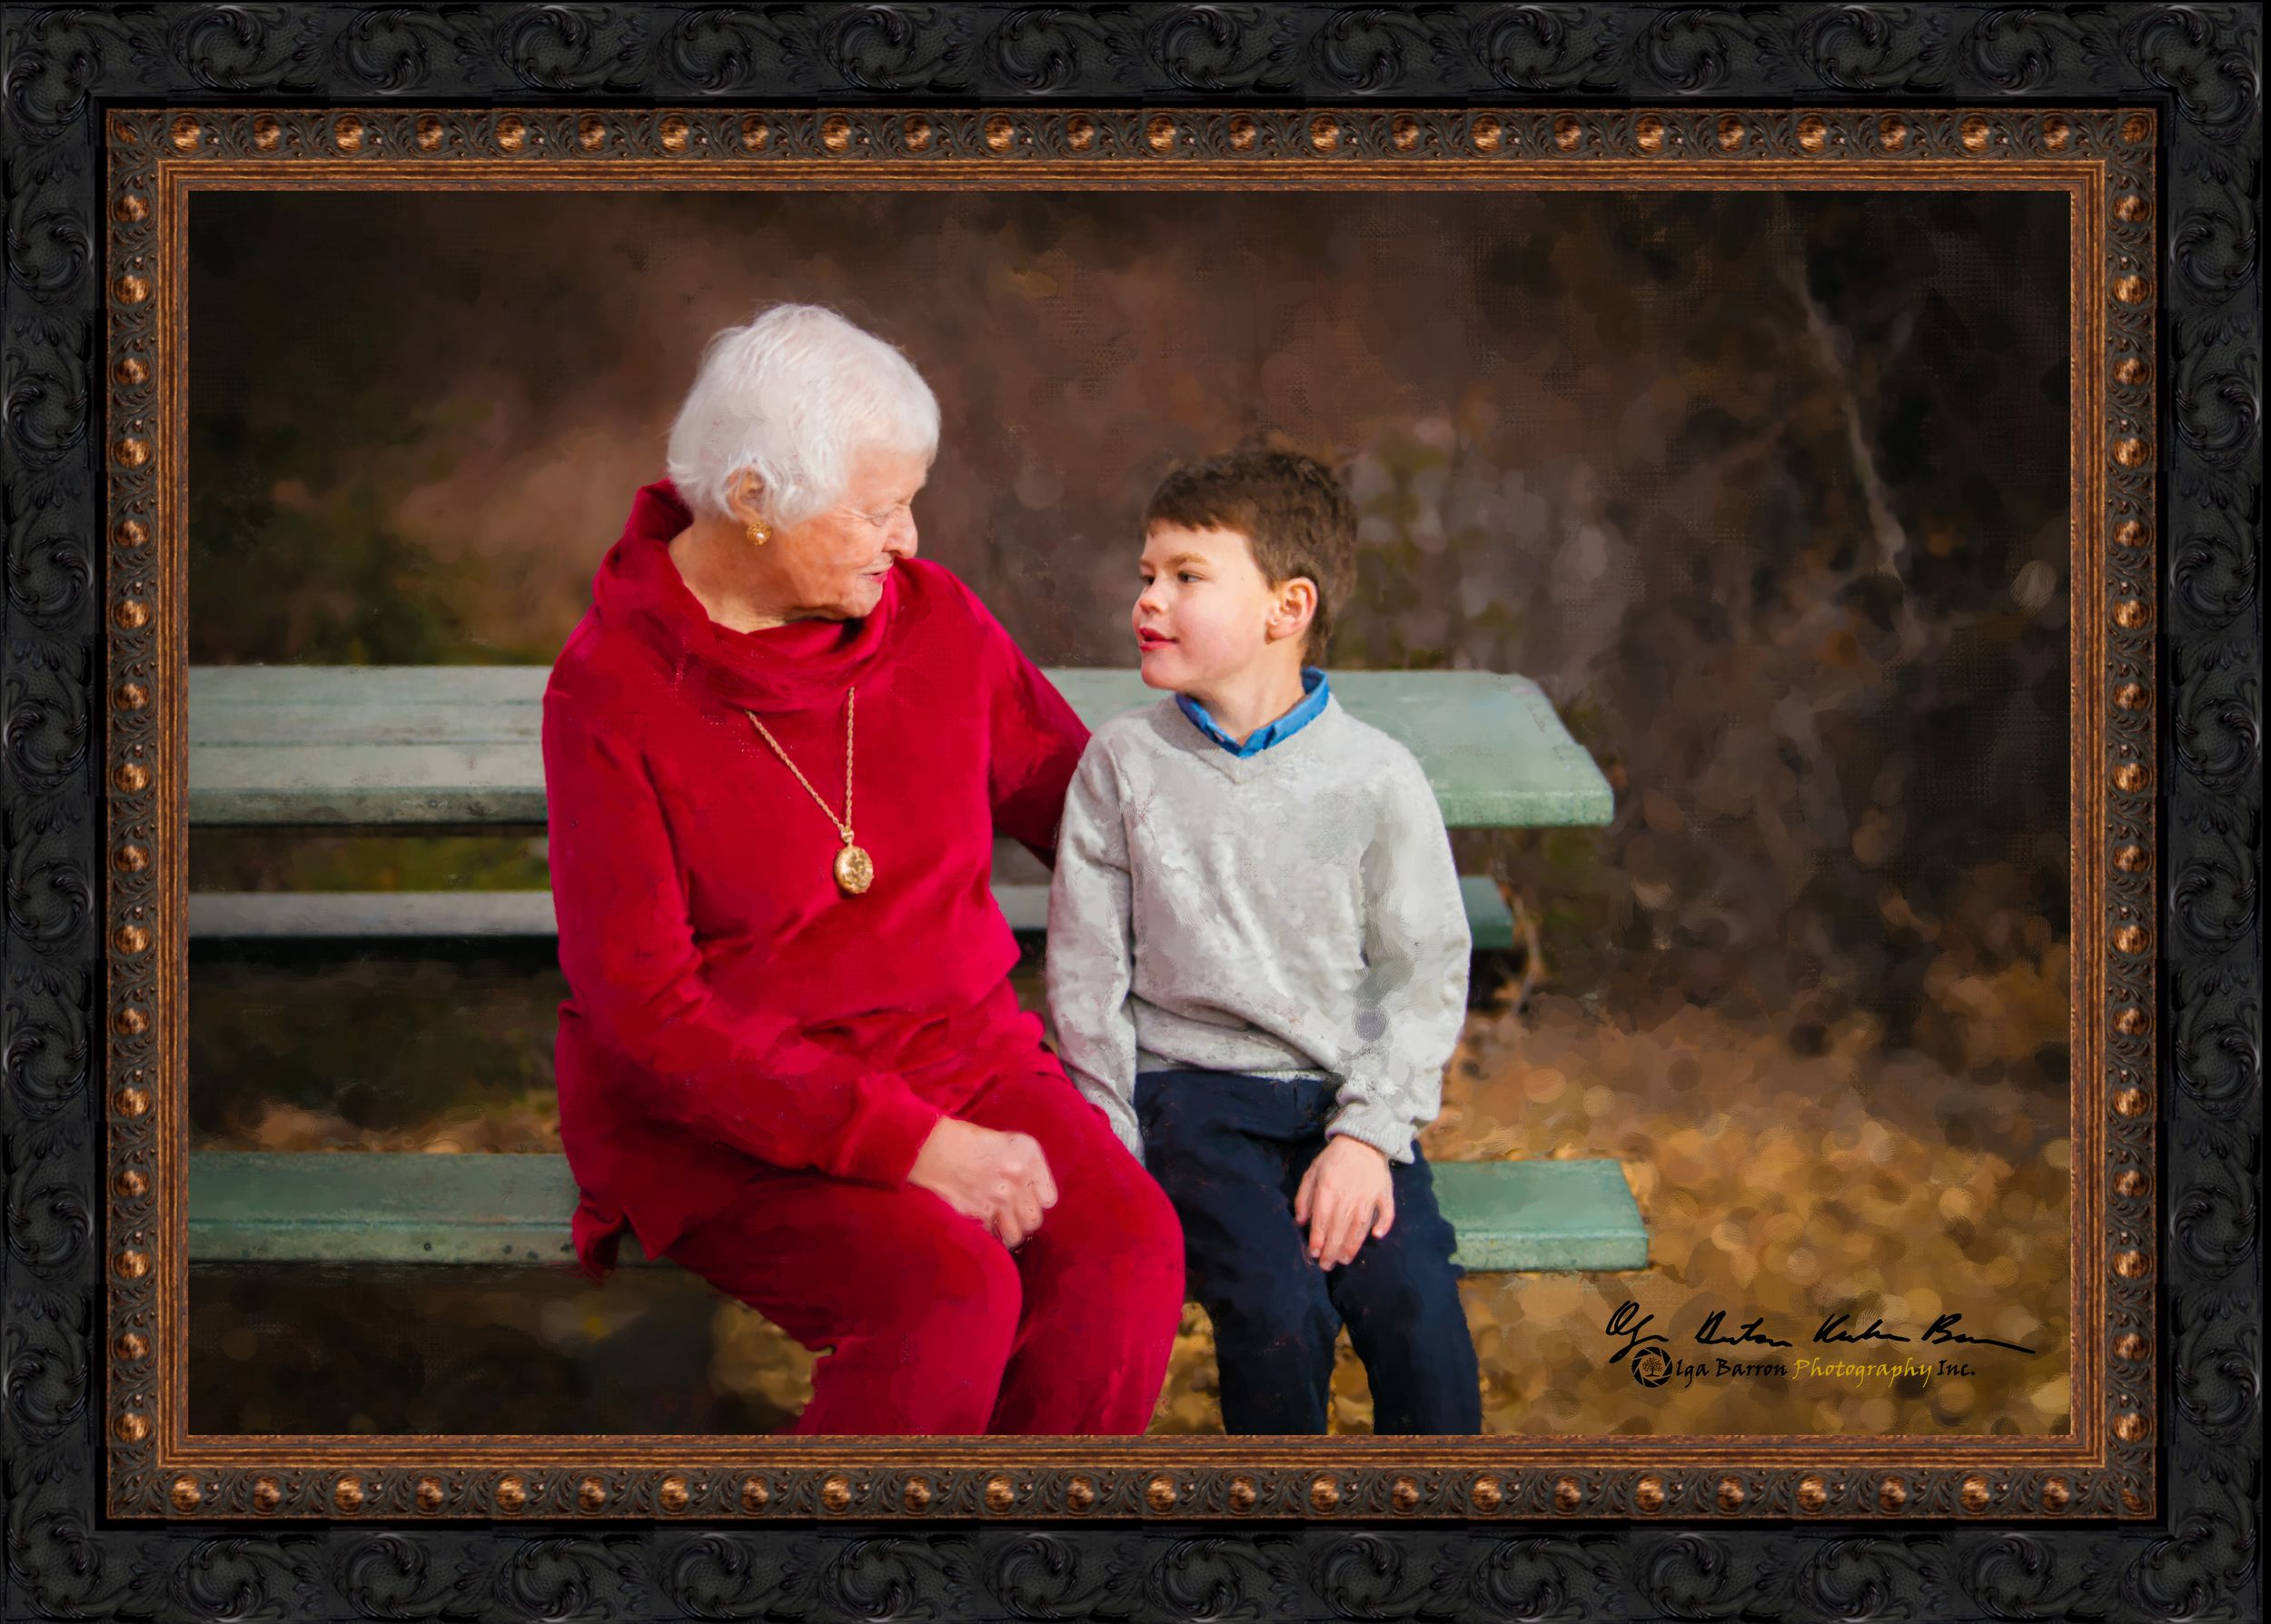 Framed painterly portrait of a grandma and grandson at a picnic table in the fall